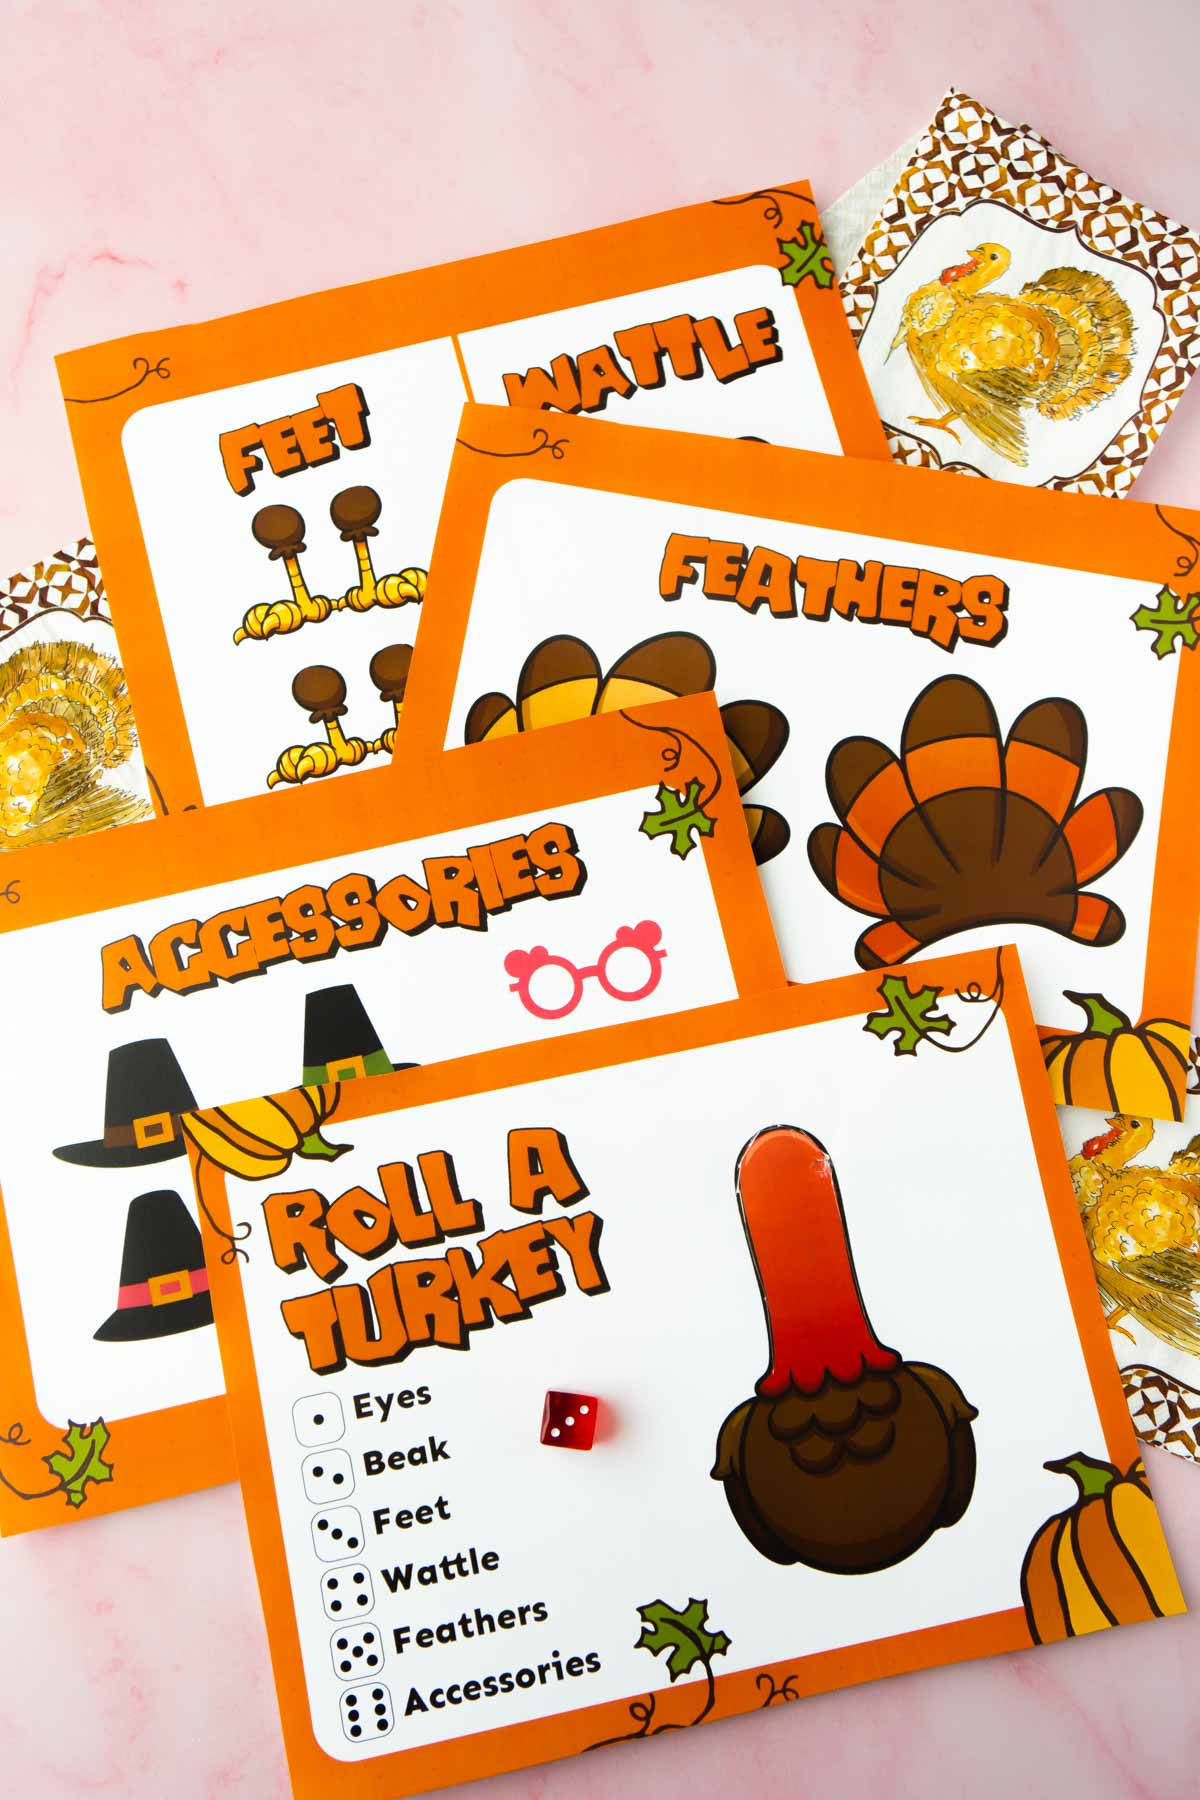 Roll a turkey game printed out on a pink background